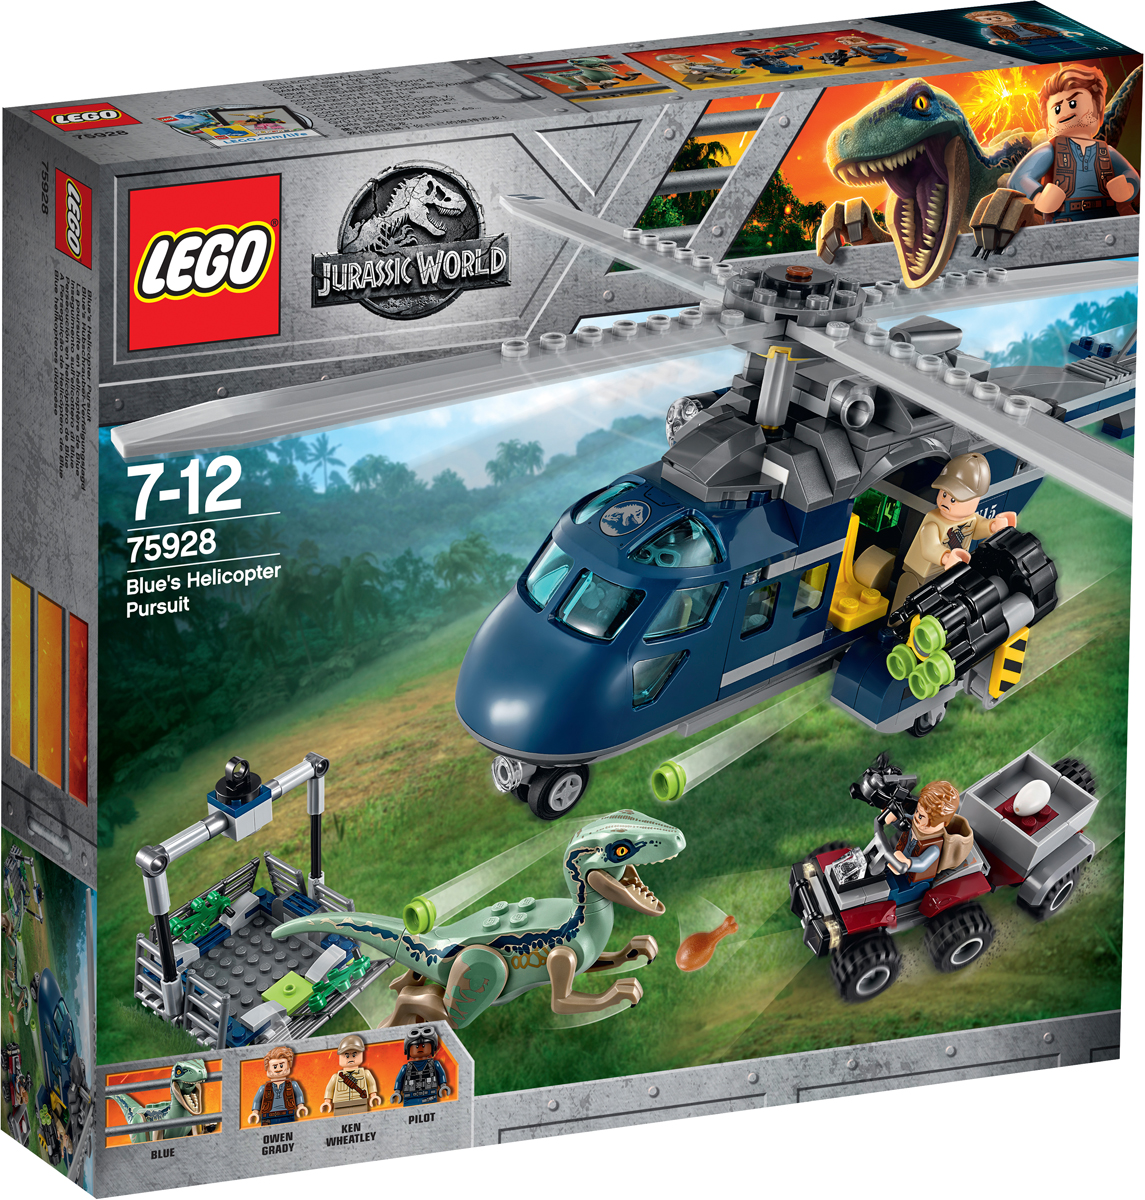 LEGO Jurassic World Конструктор Погоня за Блю на вертолете